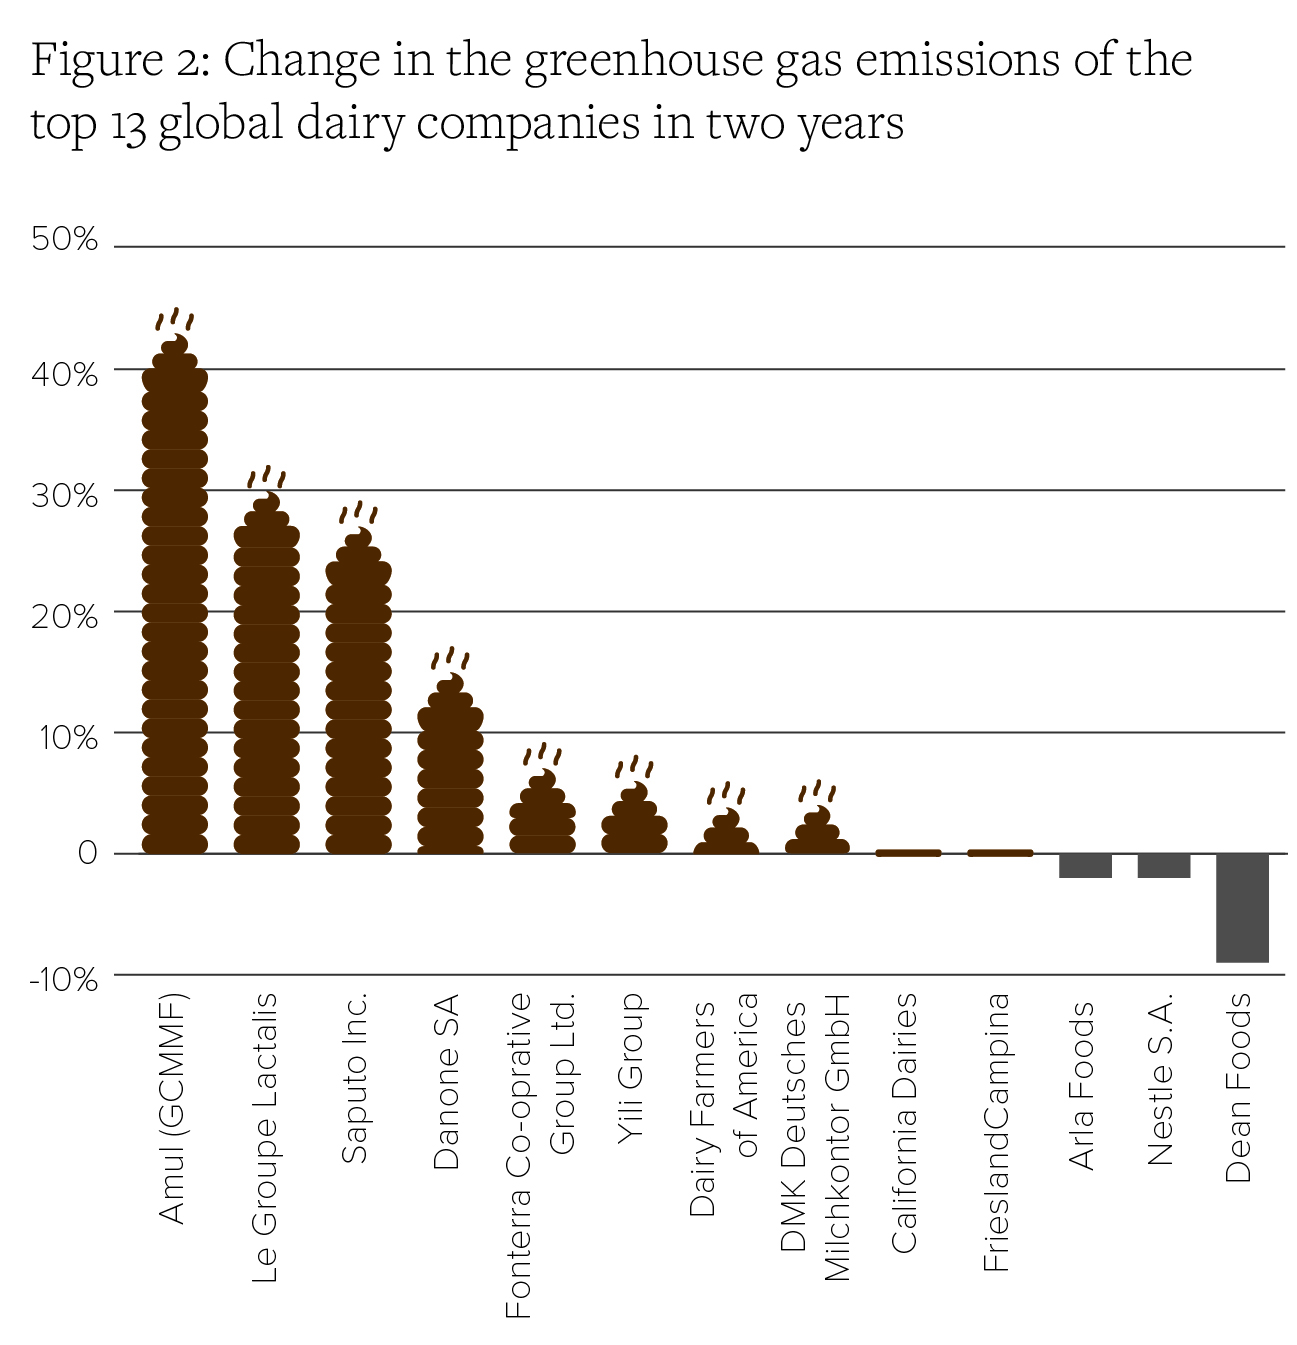 Figure 2: Change in the greenhouse gas emissions of the top 13 global dairy companies in two years